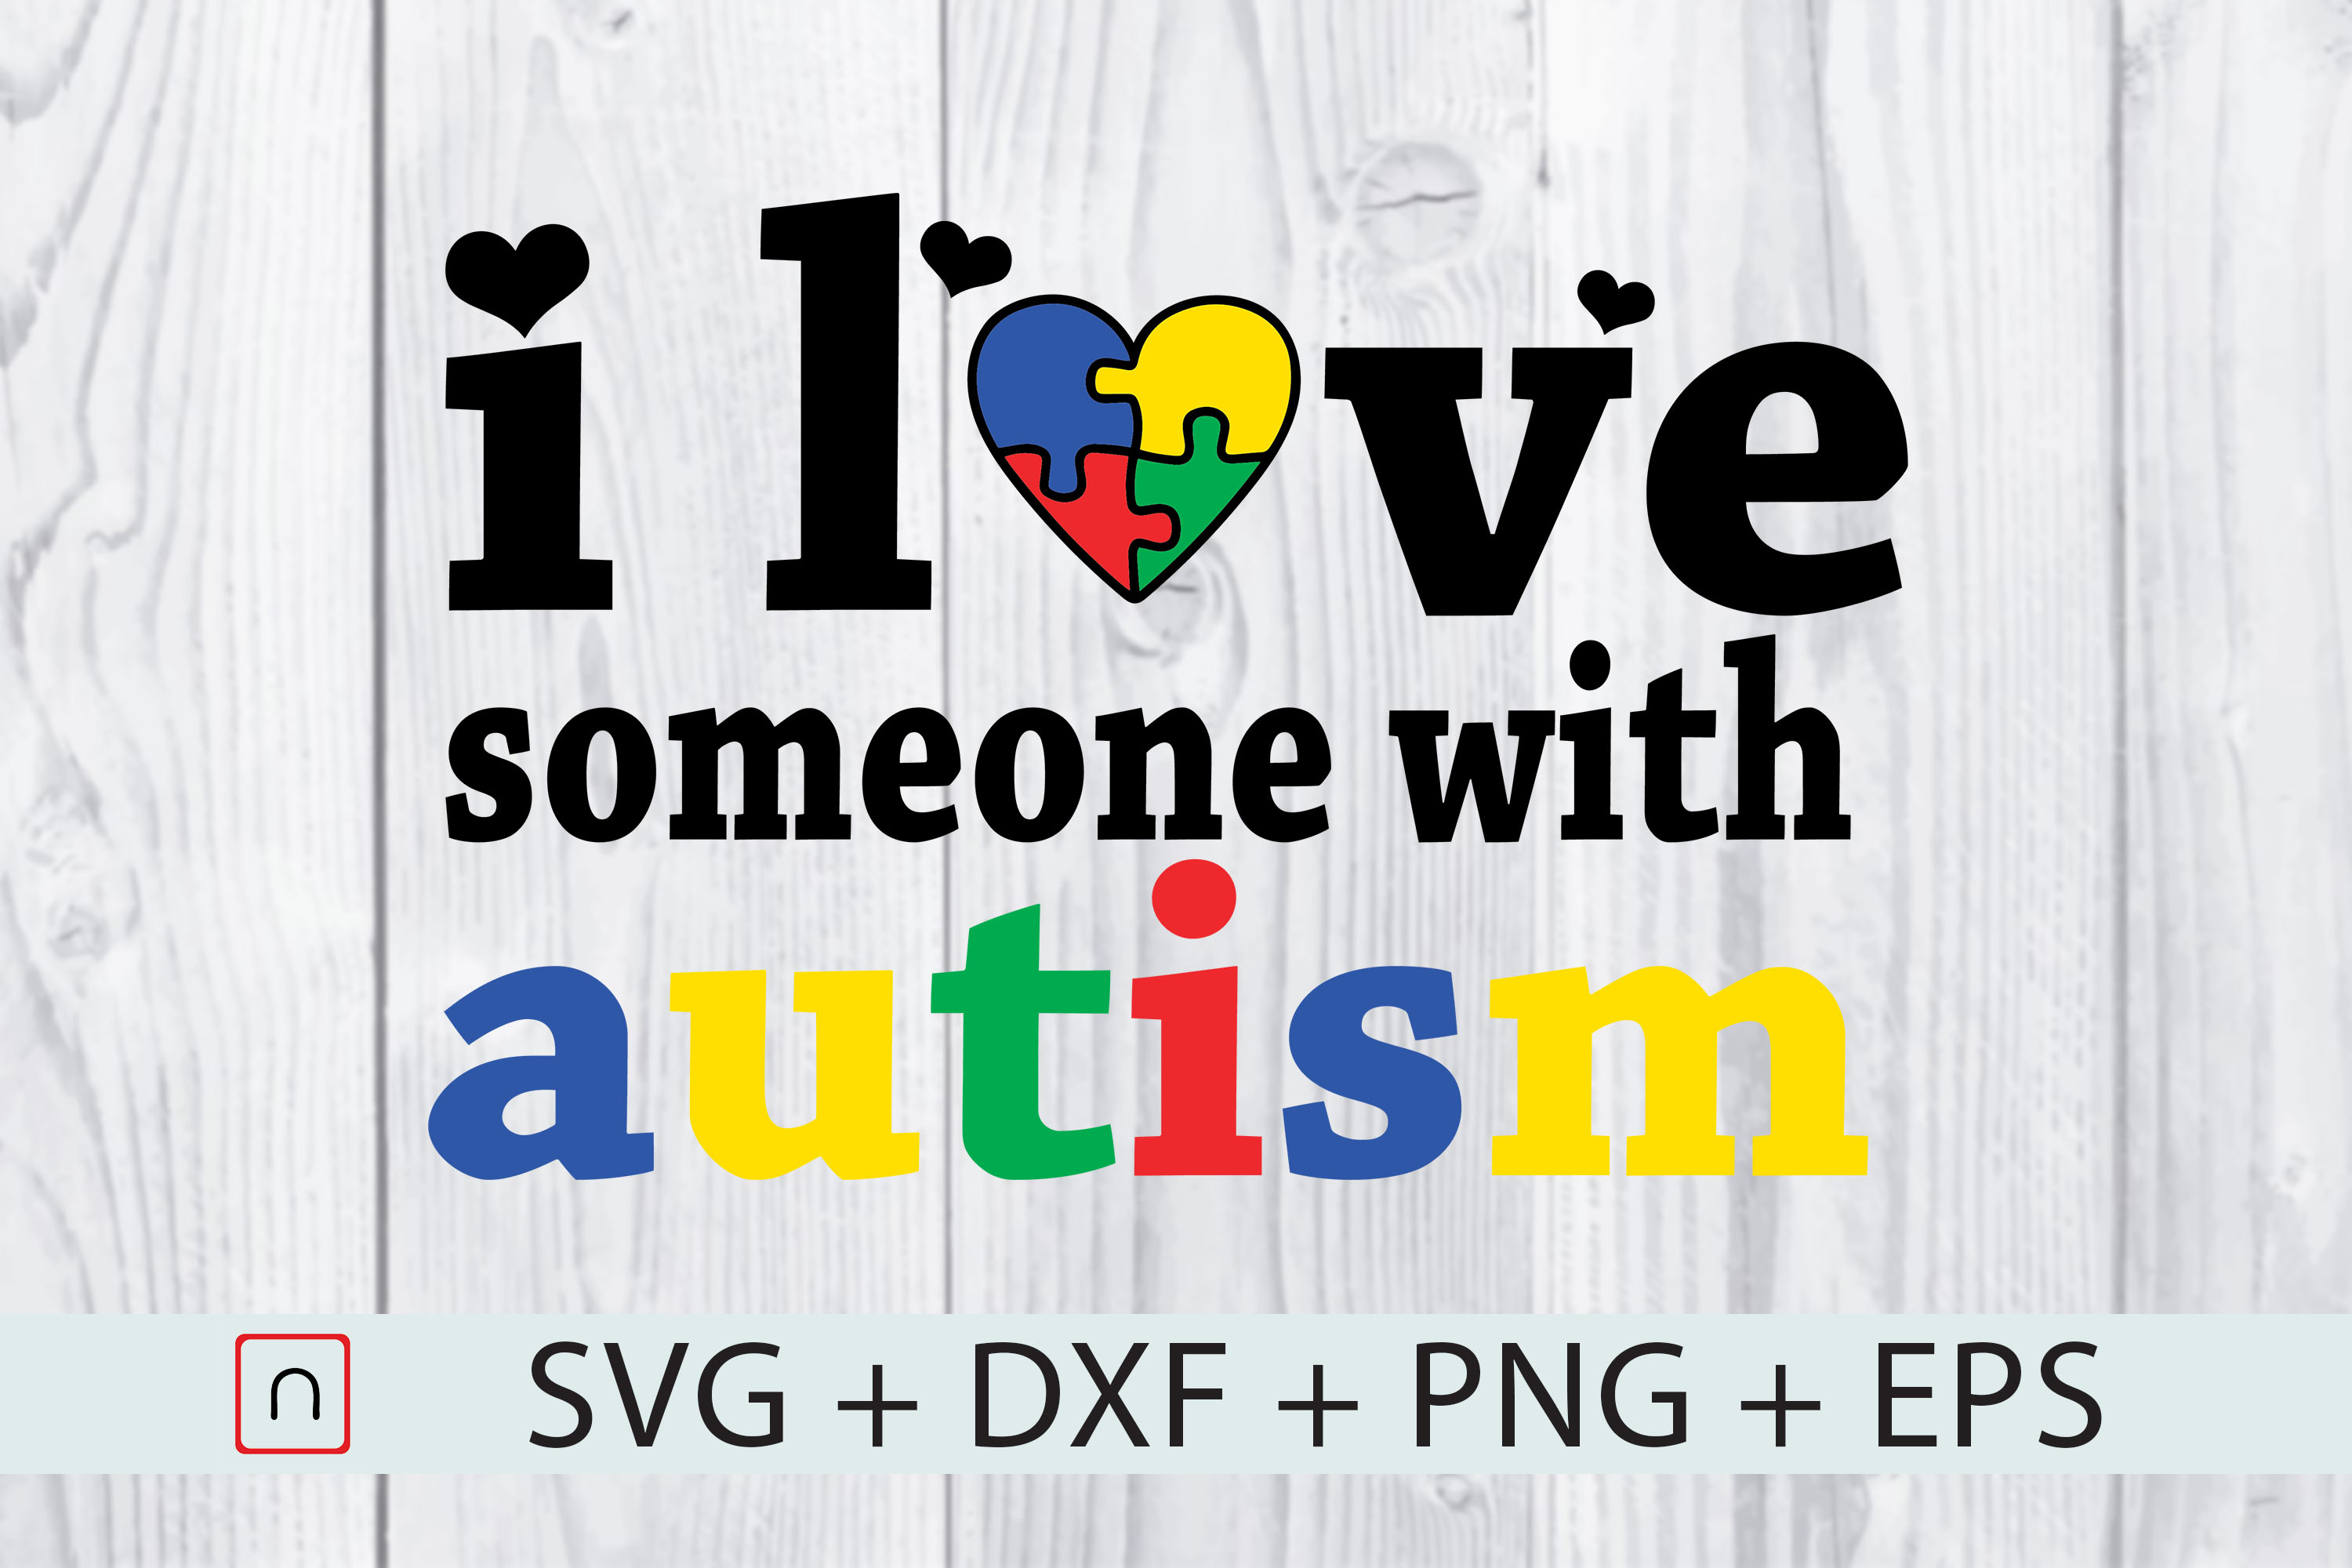 Download Free I Love Someone With Autism Graphic By Novalia Creative Fabrica for Cricut Explore, Silhouette and other cutting machines.